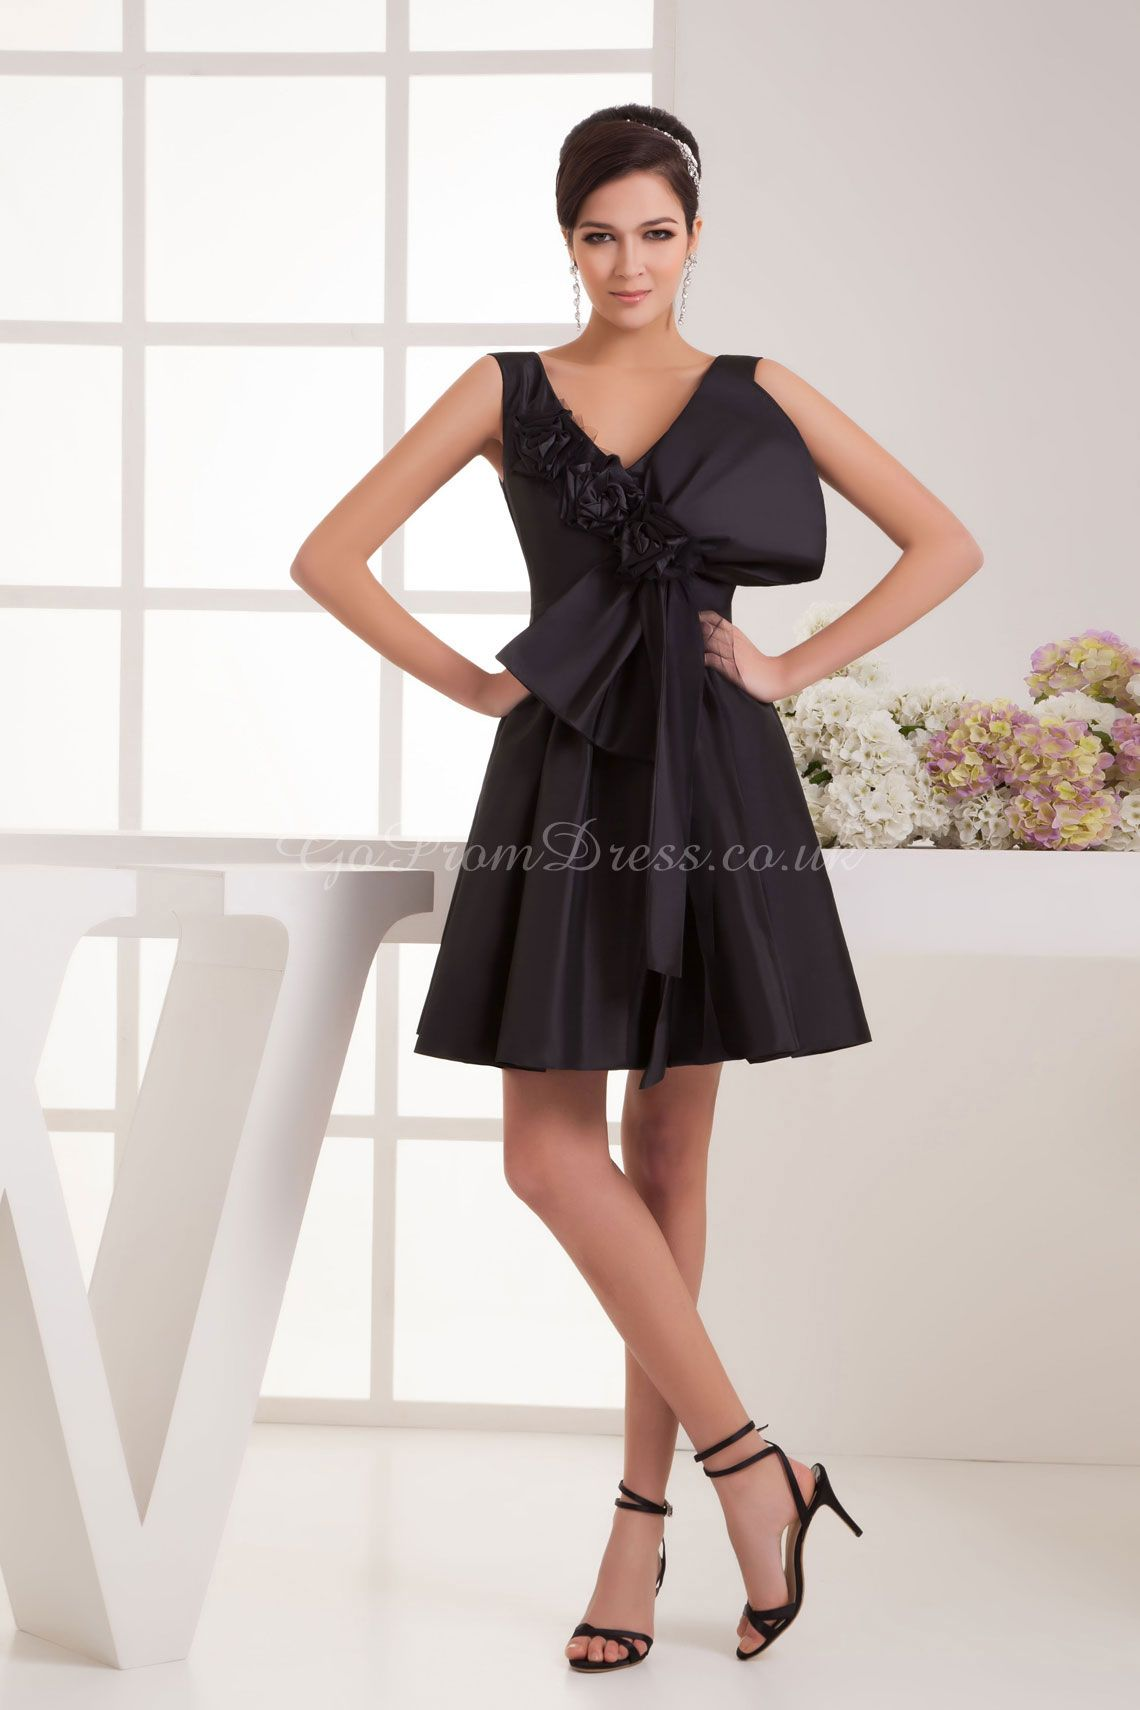 Black dress for wedding party  cocktail dresses  Short Dresses  Pinterest  Fall winter fashion